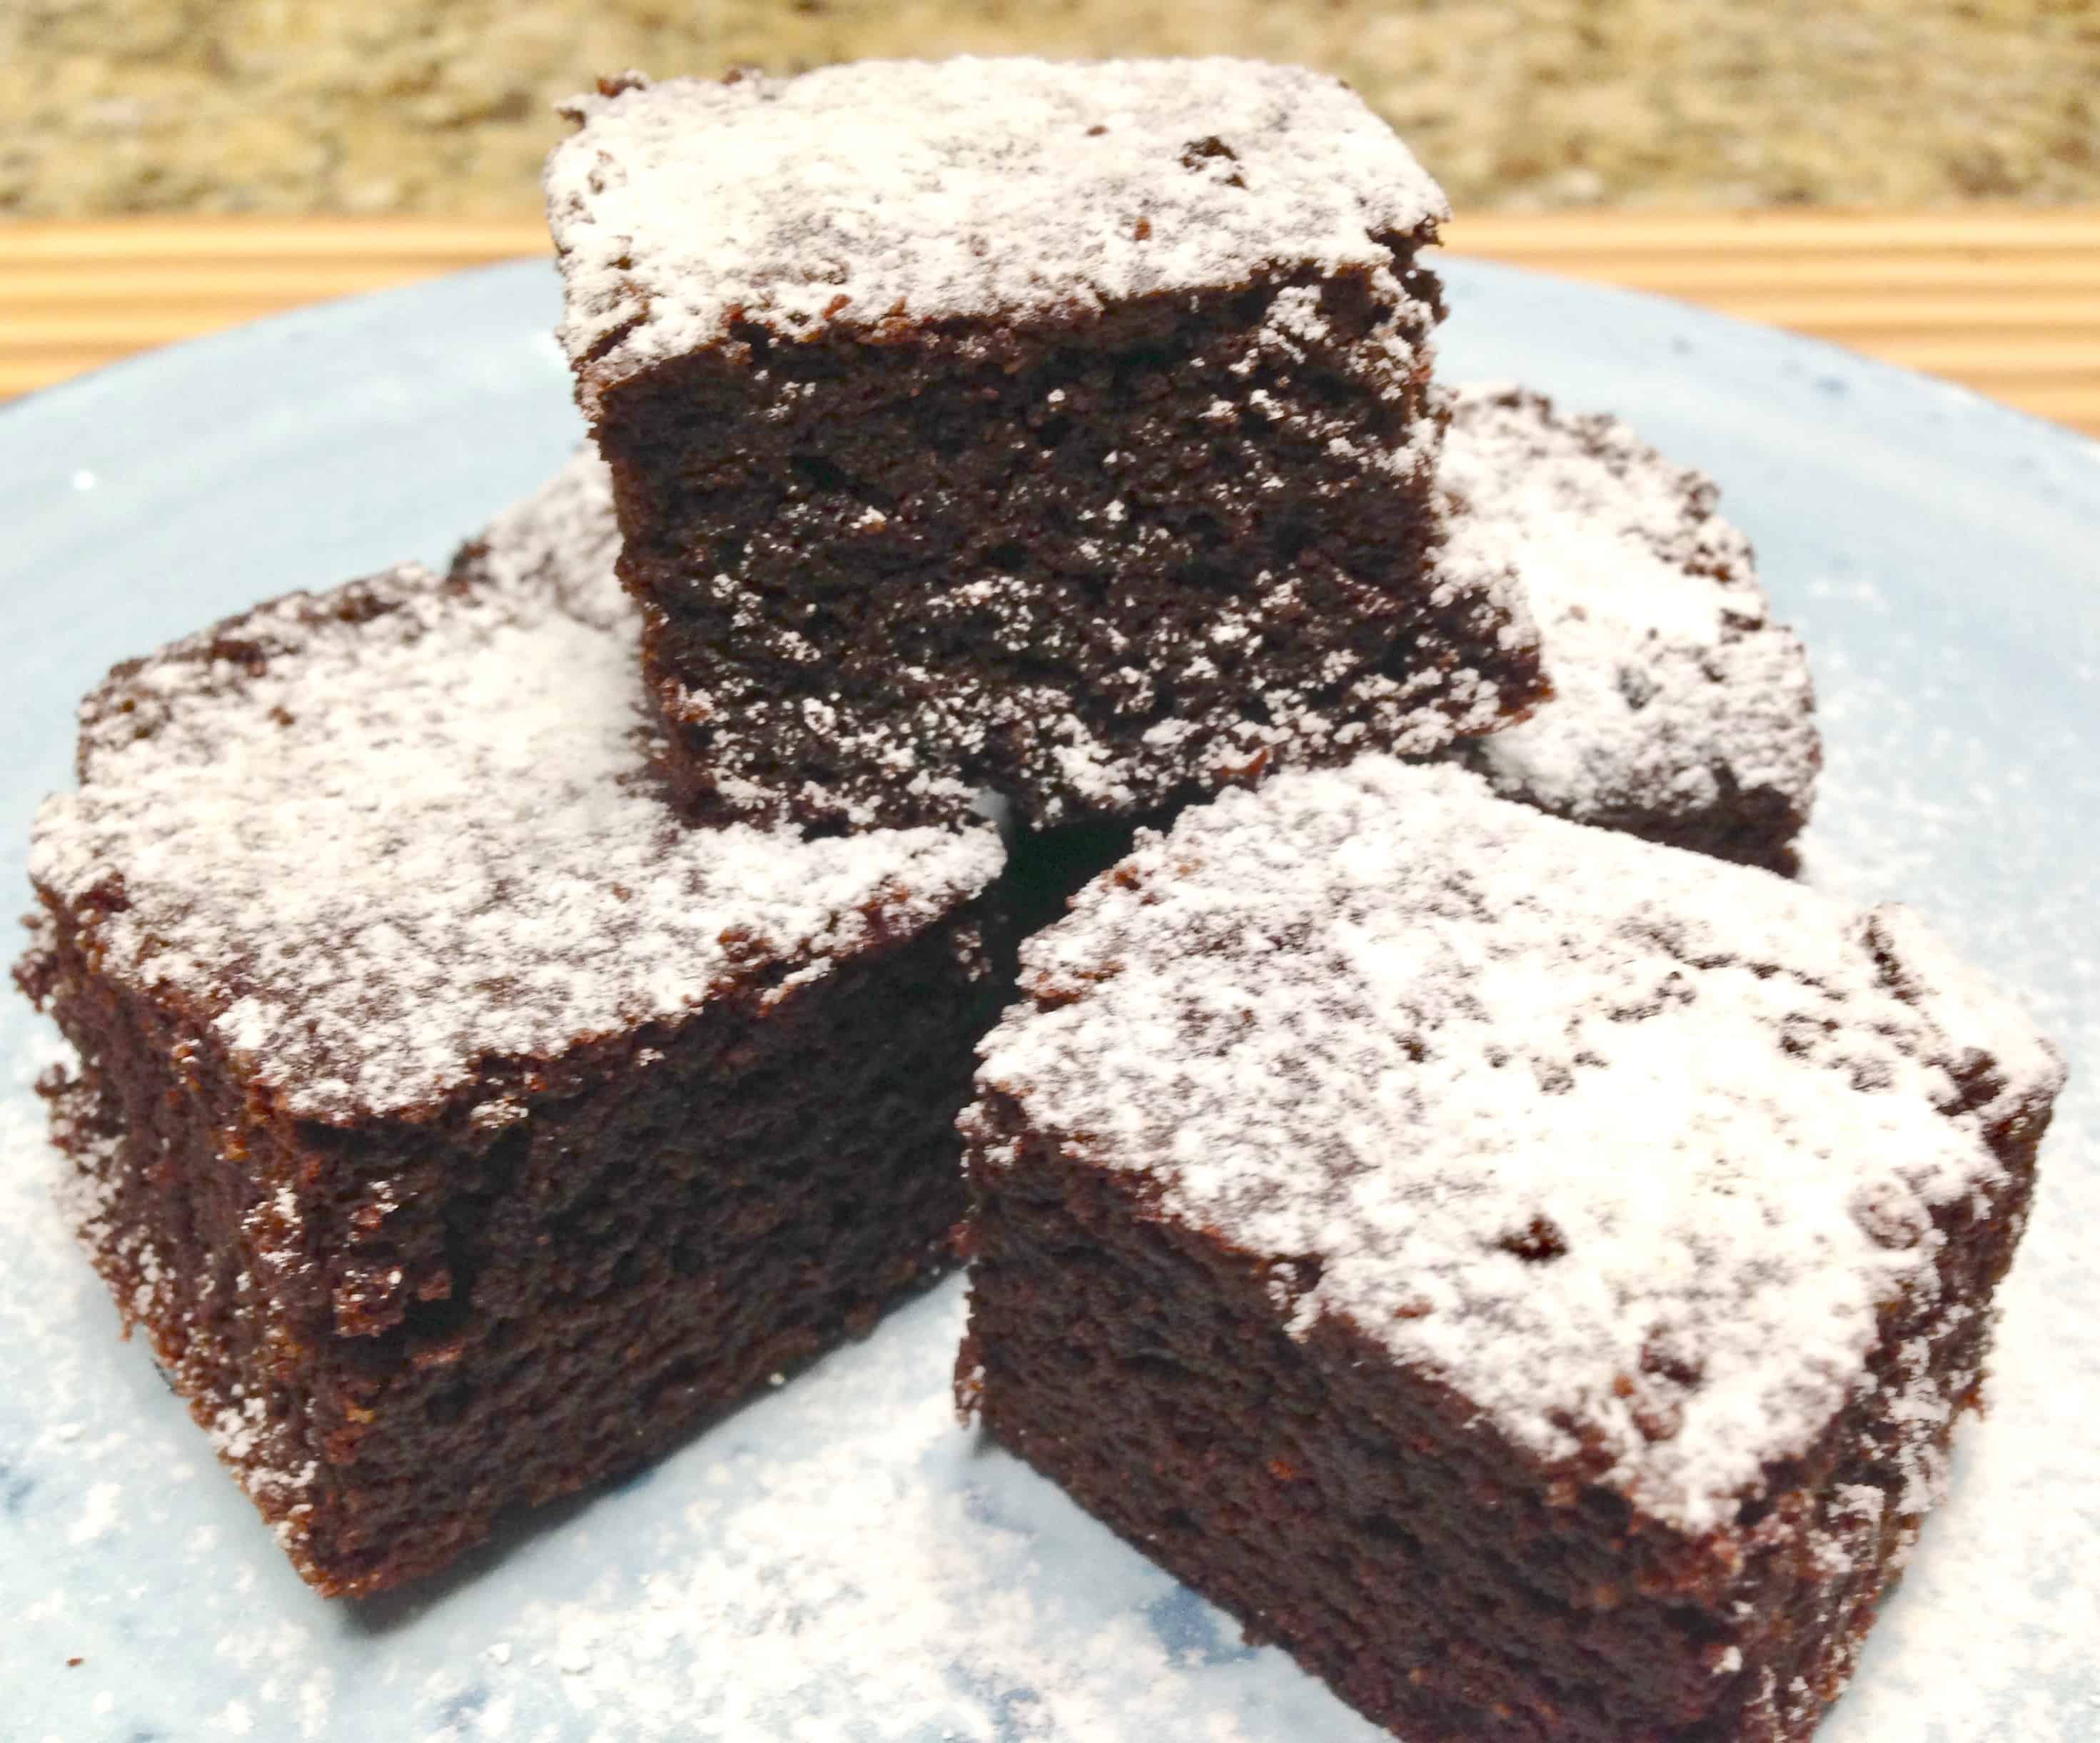 blue plate with avocado chocolate brownies on top with powdered sugar